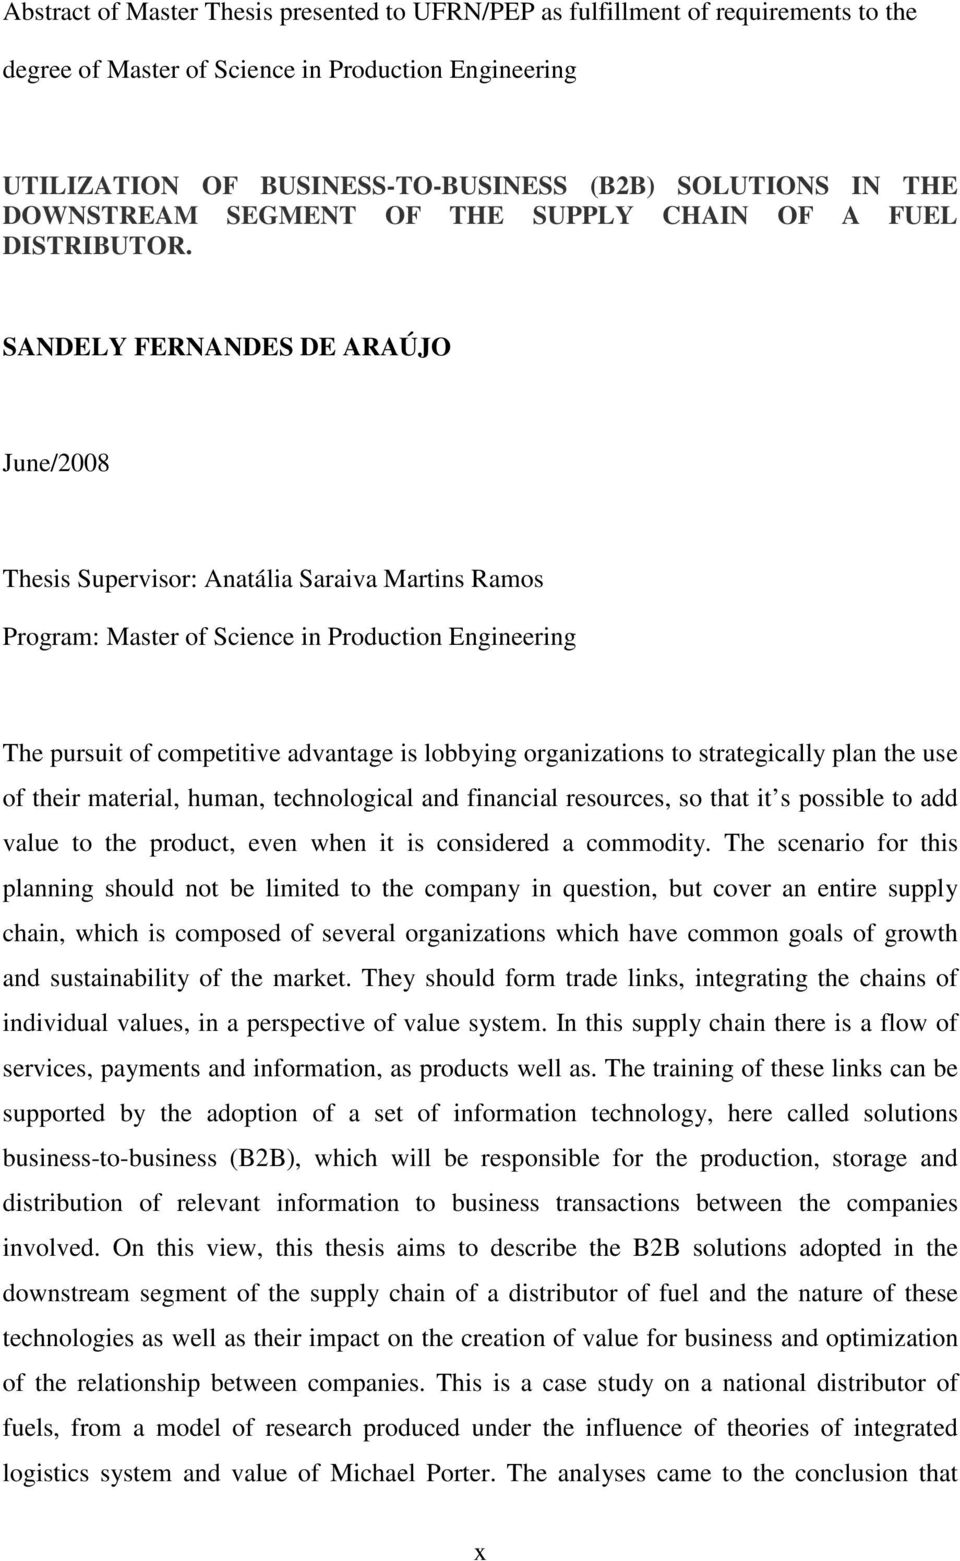 SANDELY FERNANDES DE ARAÚJO June/2008 Thesis Supervisor: Anatália Saraiva Martins Ramos Program: Master of Science in Production Engineering The pursuit of competitive advantage is lobbying